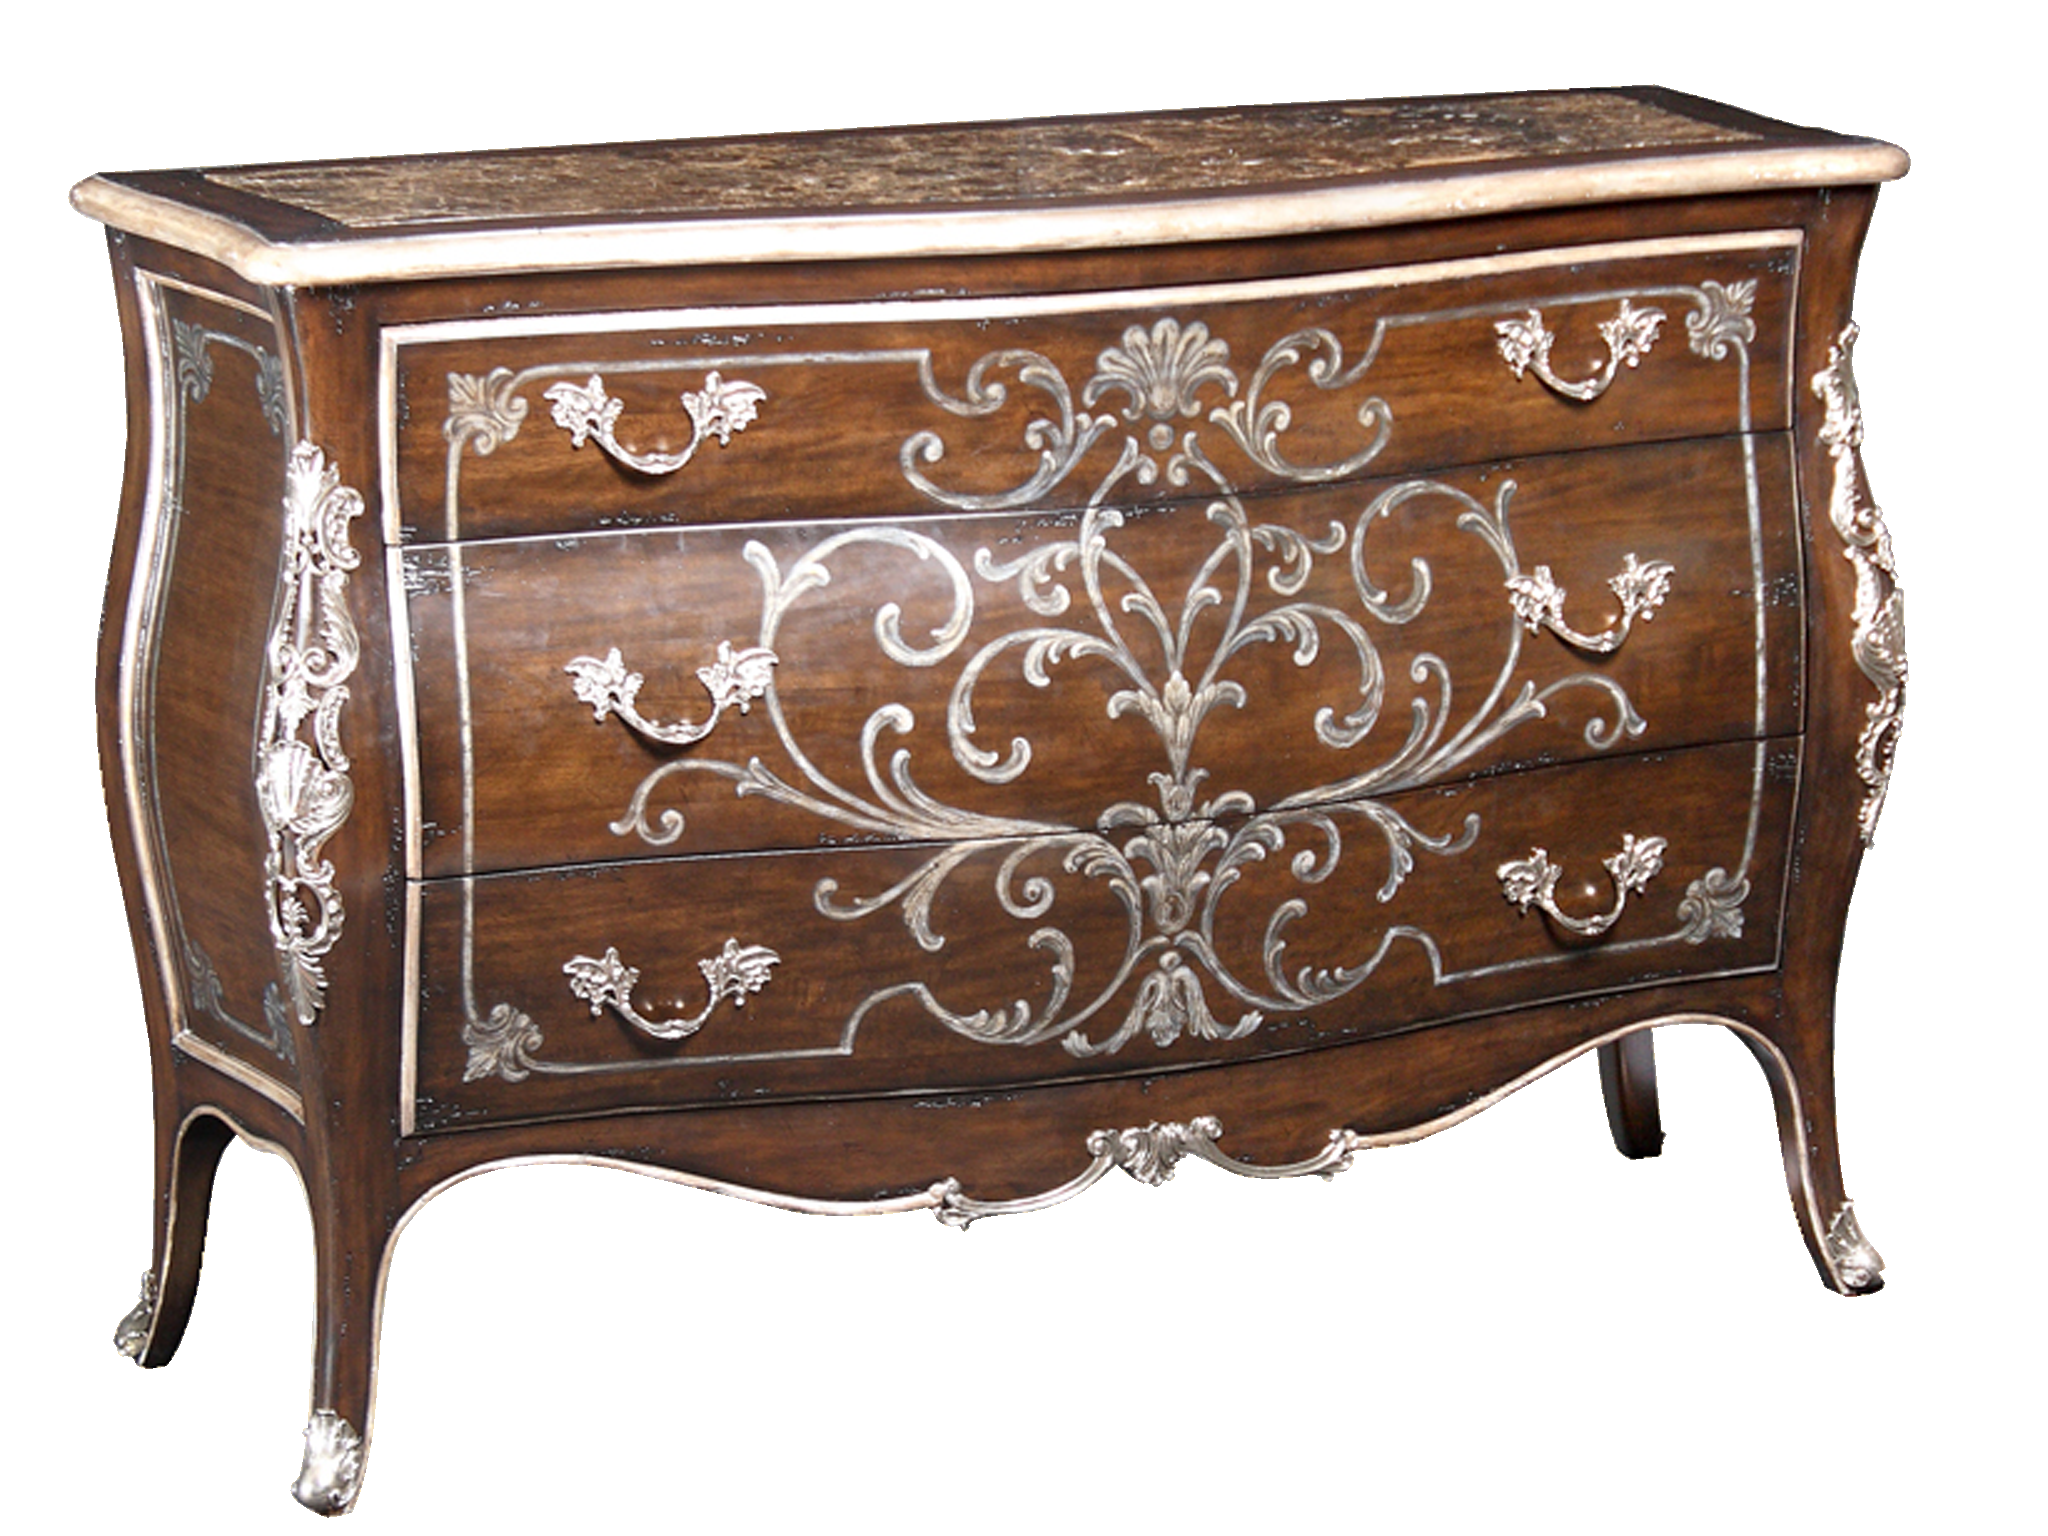 piazza san marco chest marge carson furnitureland south the bombay company marble top accent table chaise lounge gold and glass end white round small occasional chairs home decor